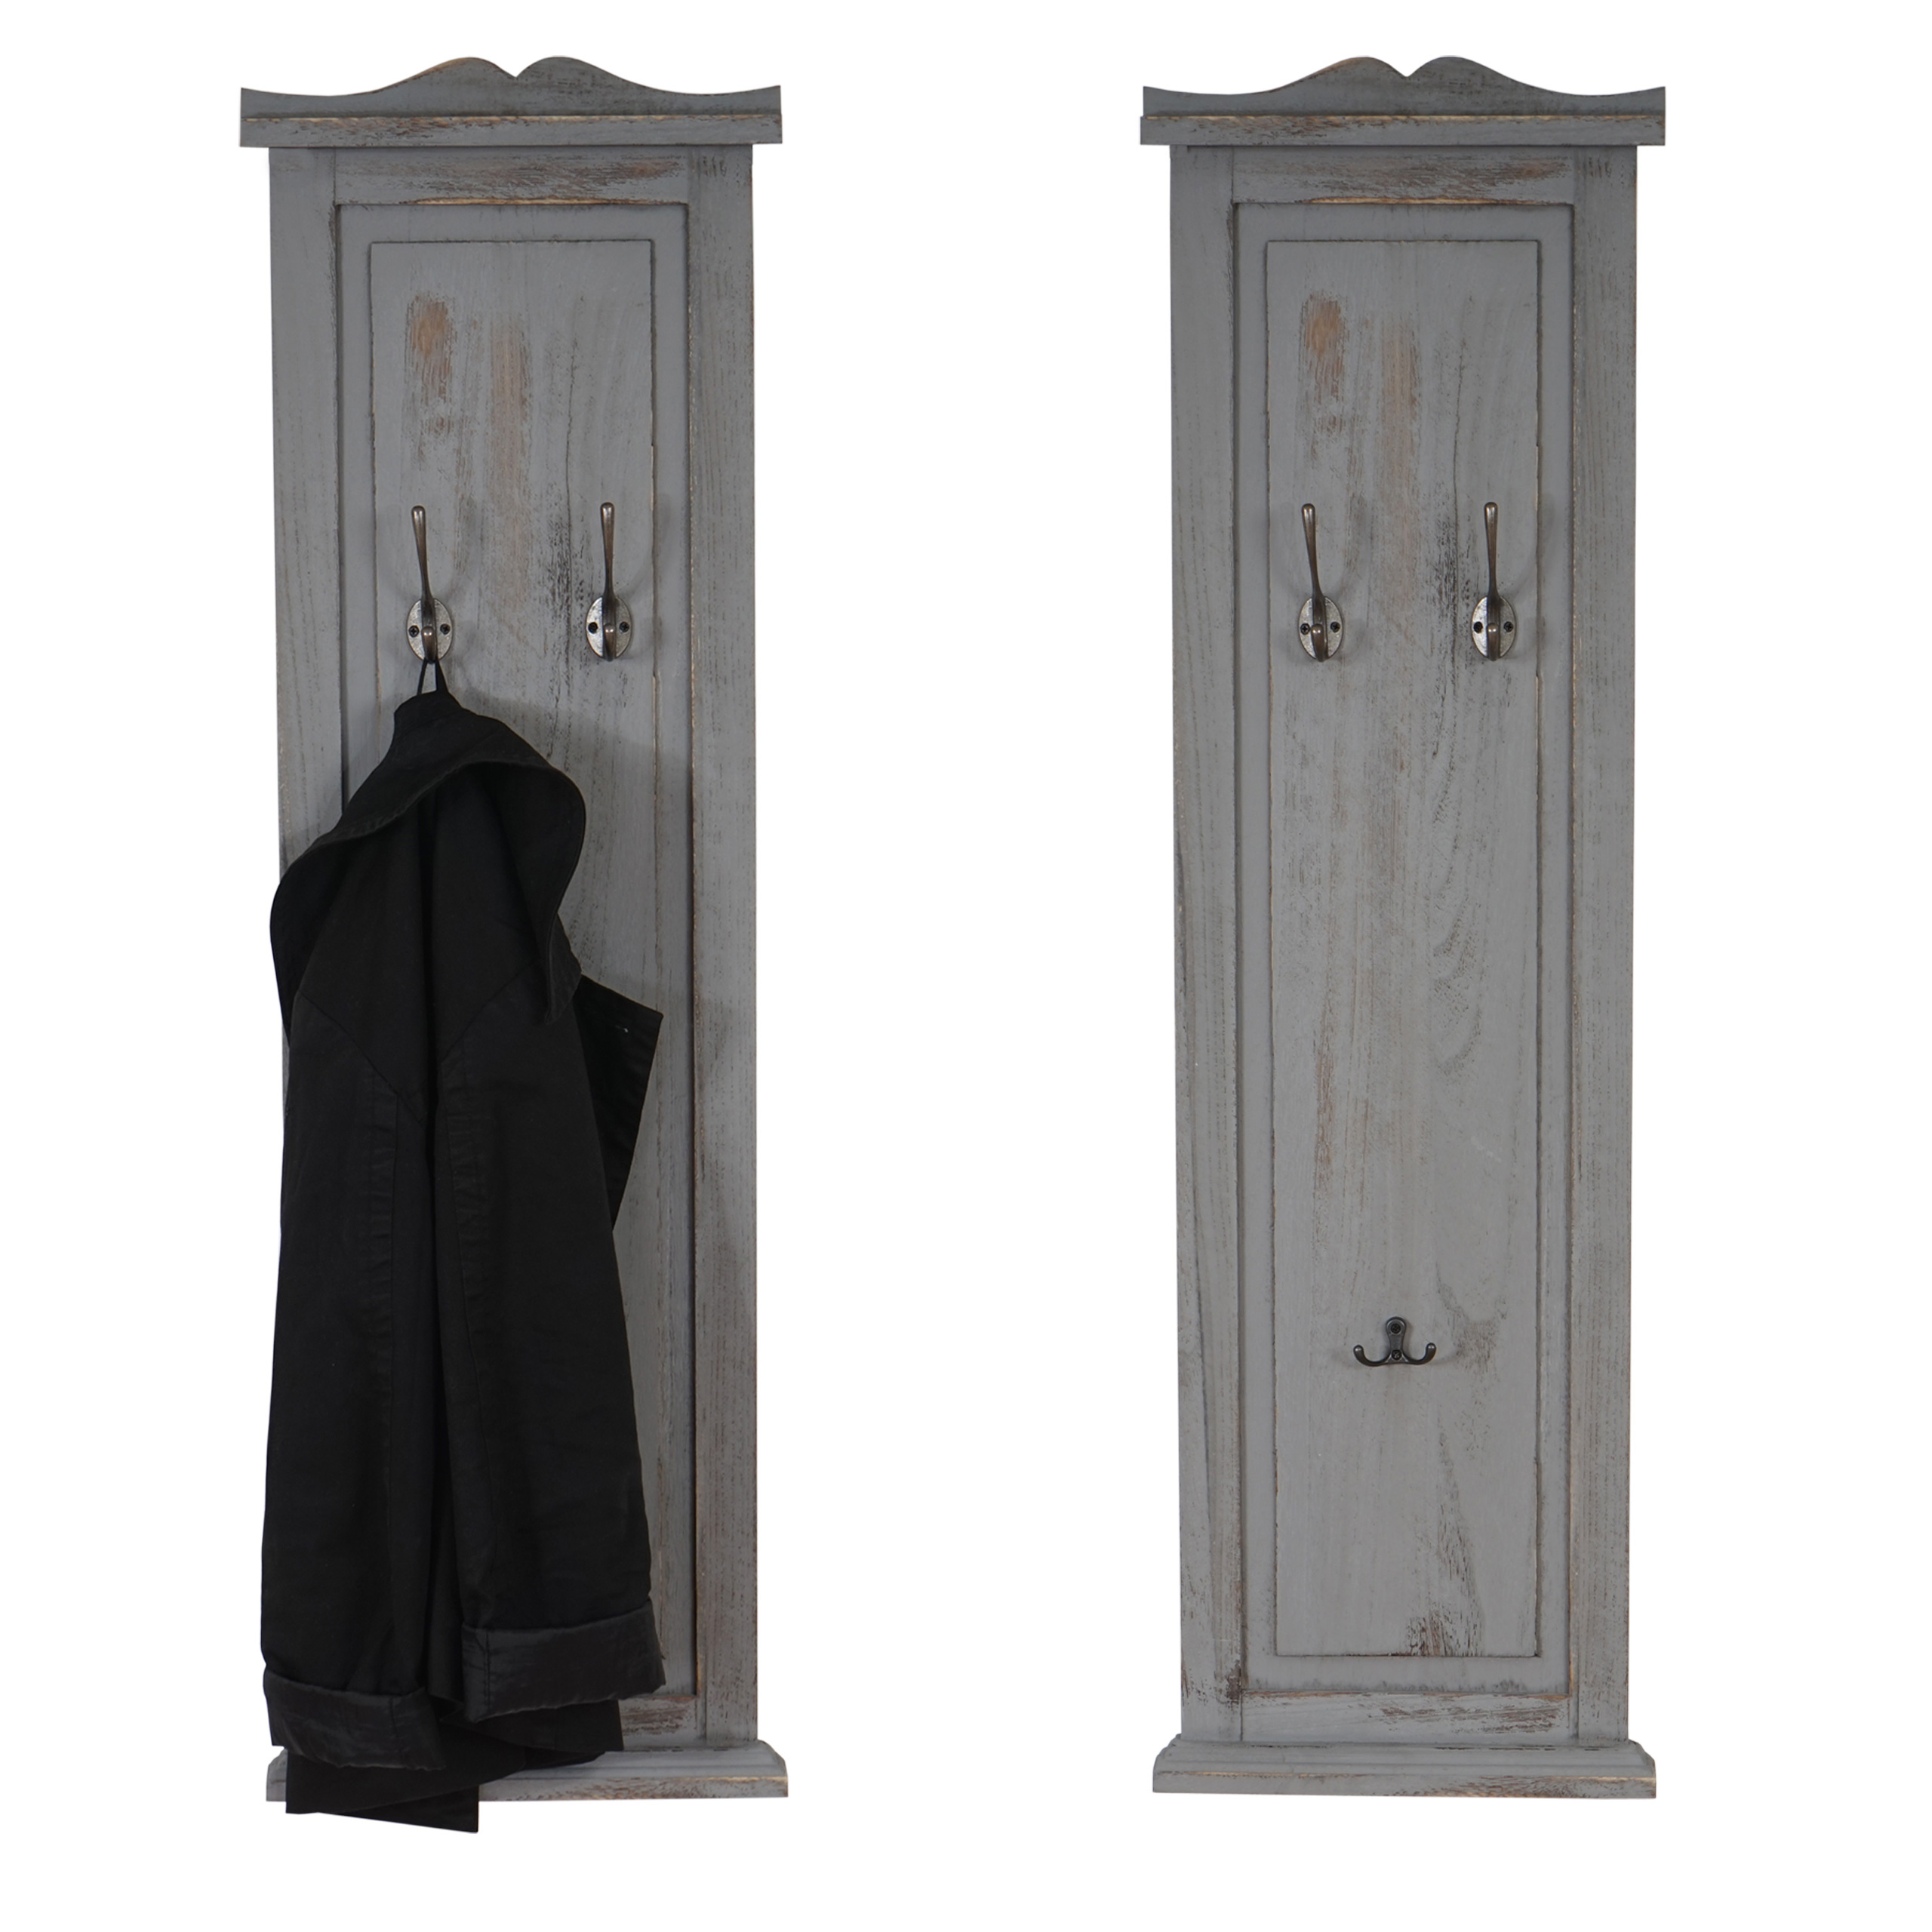 2x garderobe wandgarderobe wandhaken 109x28x3 5cm shabby look vintage grau. Black Bedroom Furniture Sets. Home Design Ideas